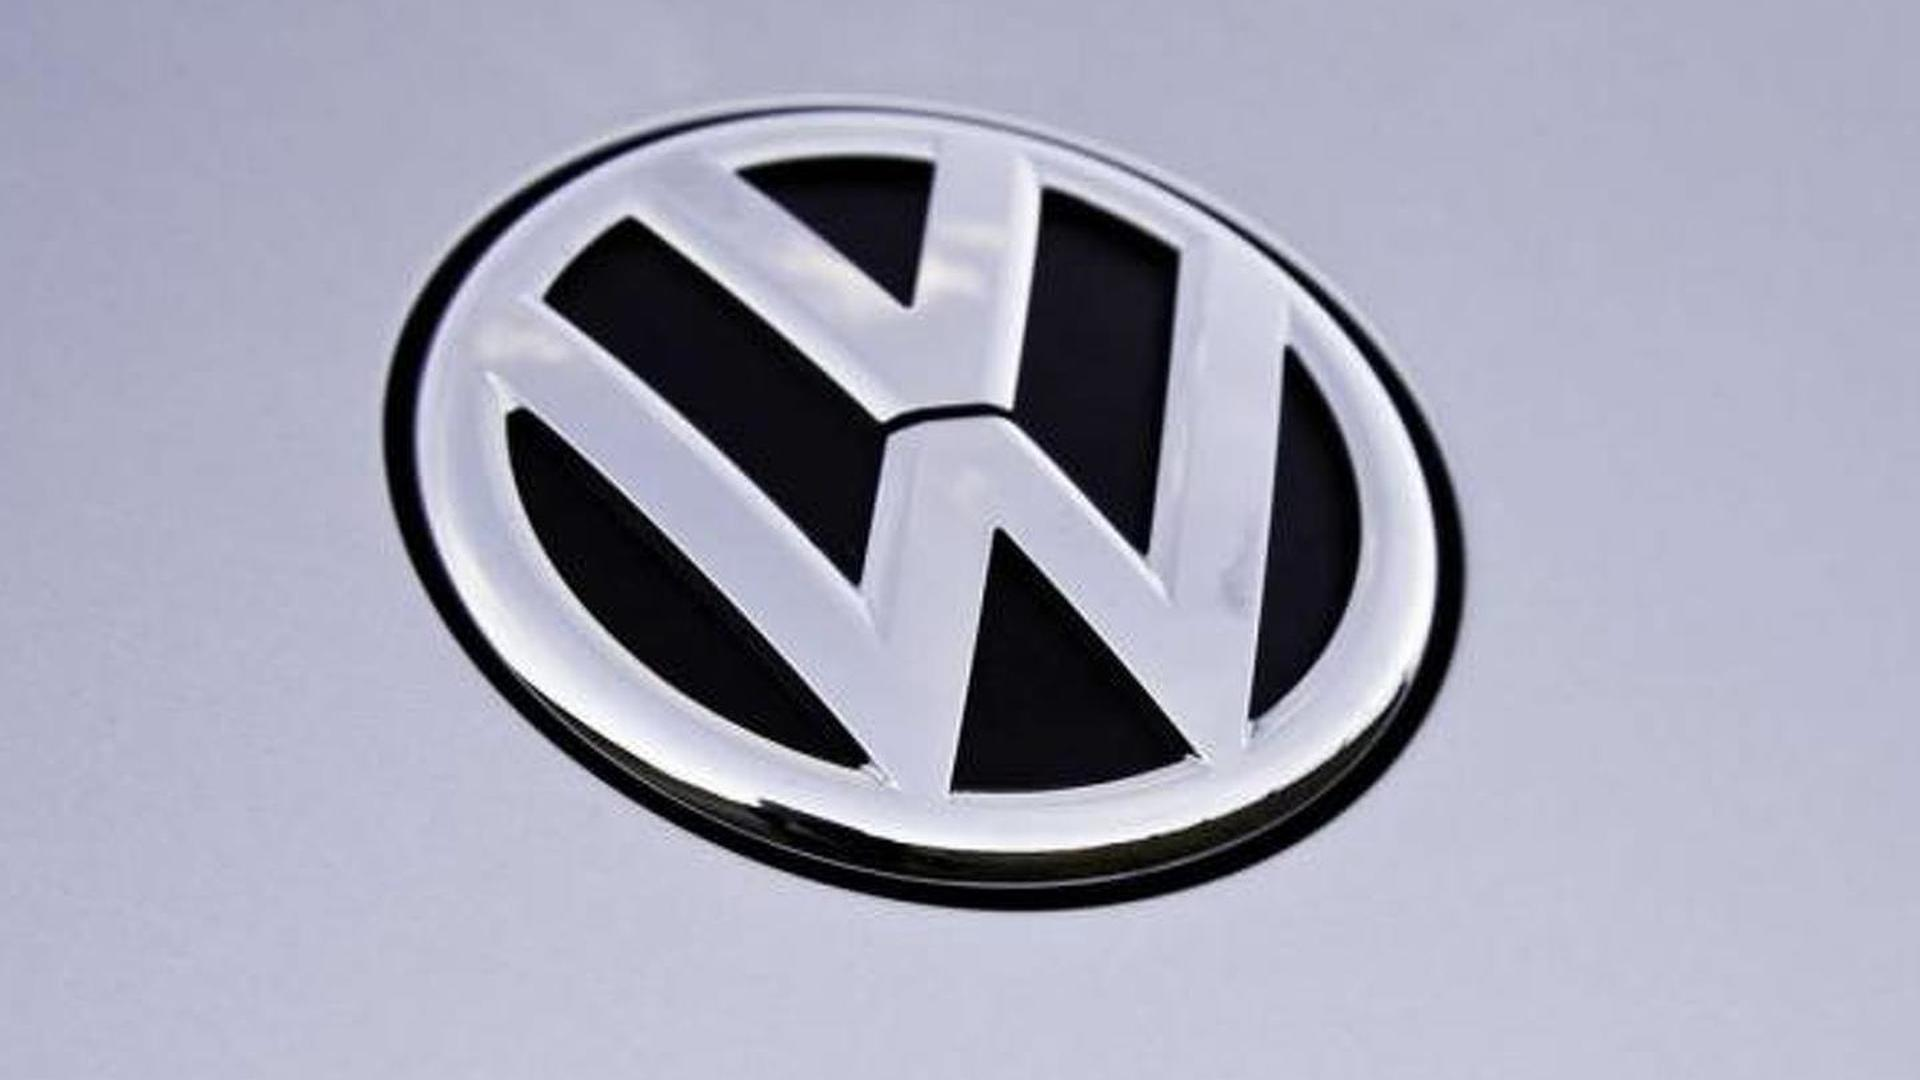 Volkswagen to unveil a new concept at CES